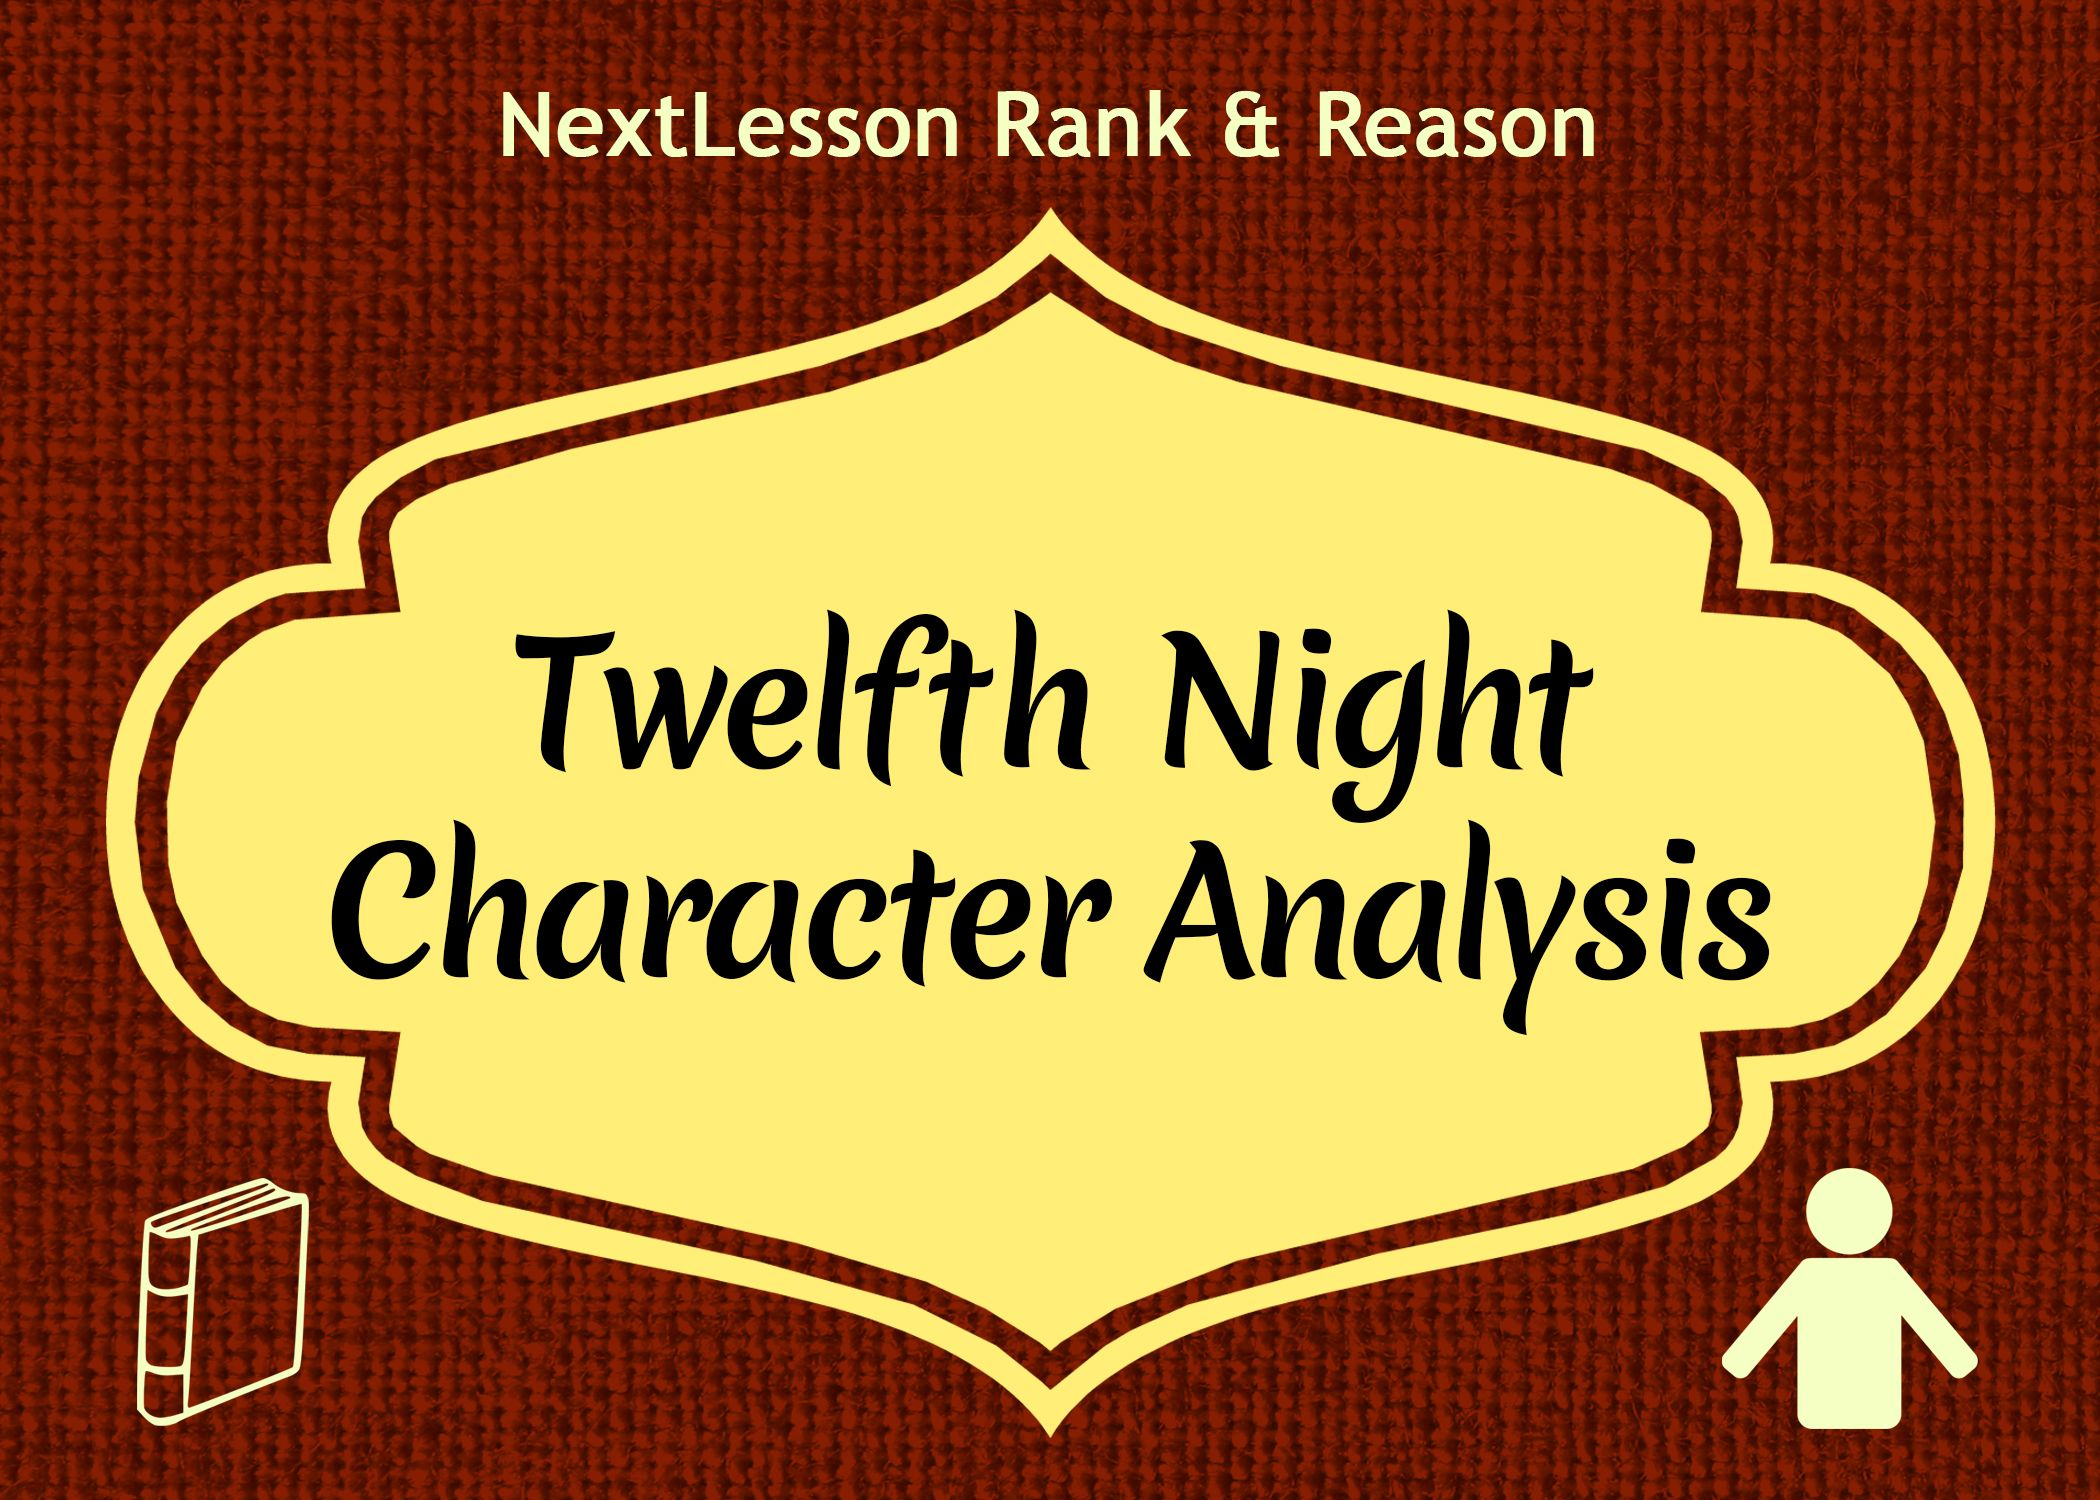 Twelfth Night Character Analysis - Critical Thinking/Problem